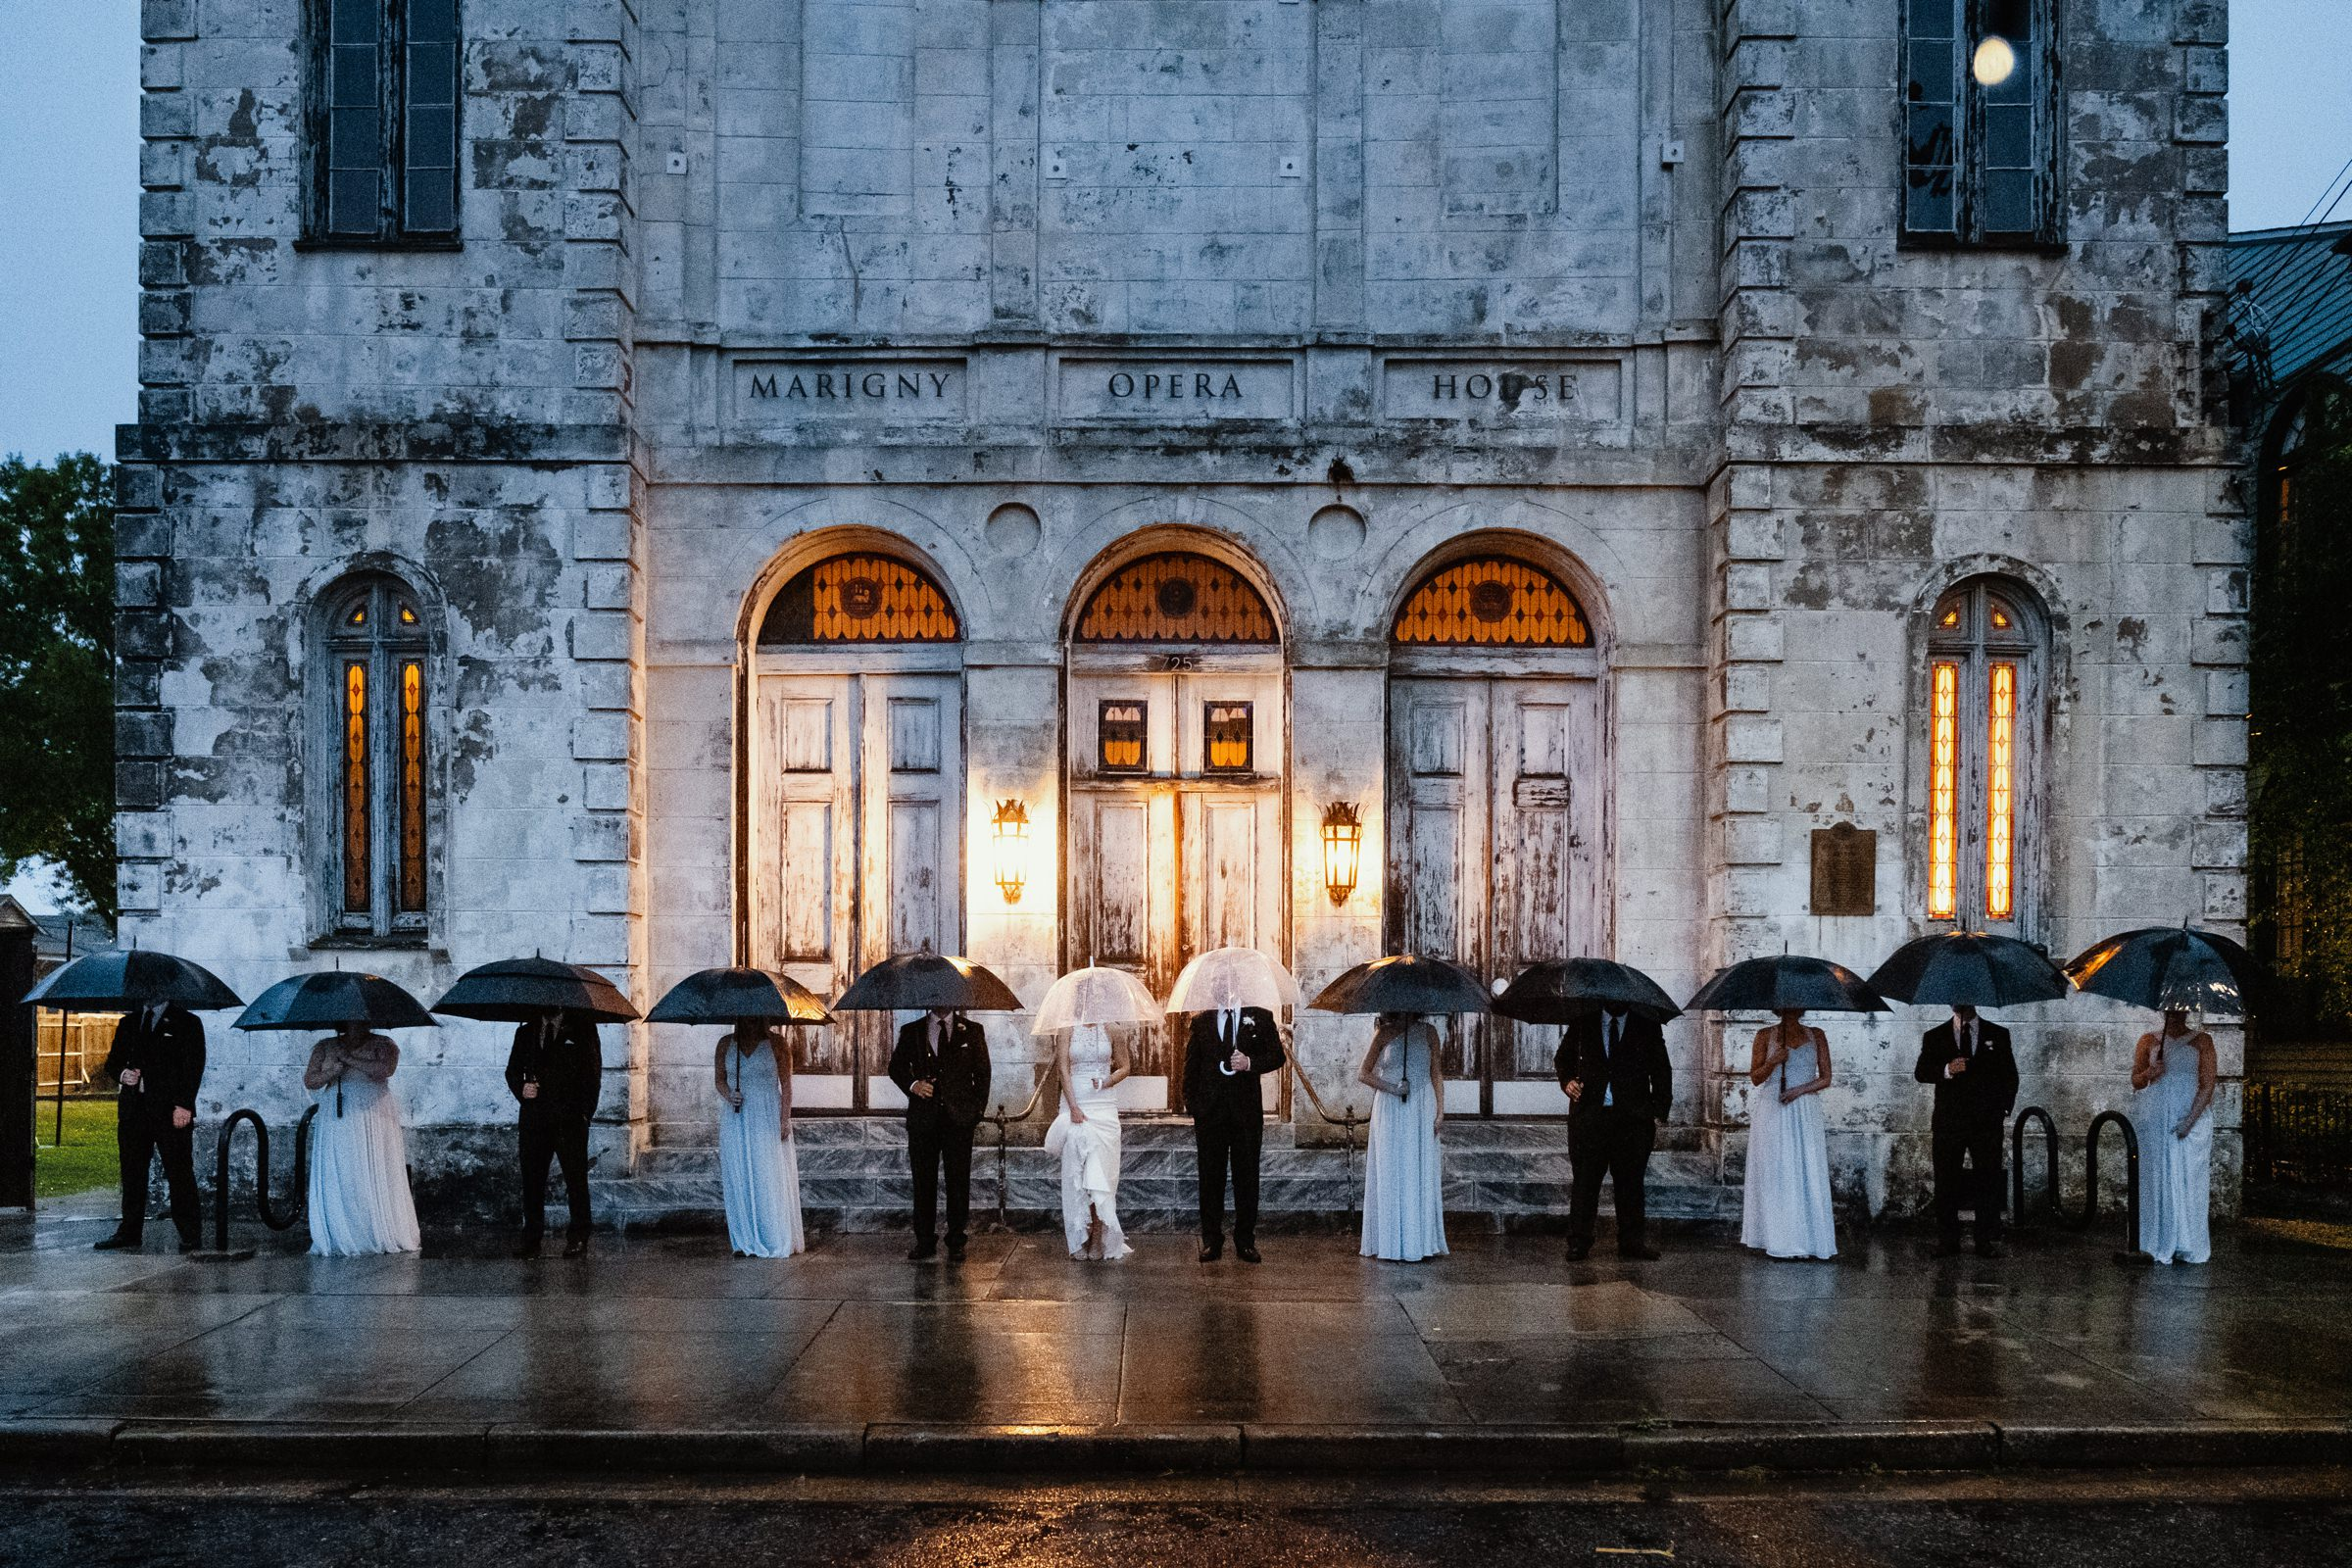 bridal-party-photo-in-the-rain-with-umbrellas-outside-venue-new-orleans-austin-houston-photo-by-dark-roux